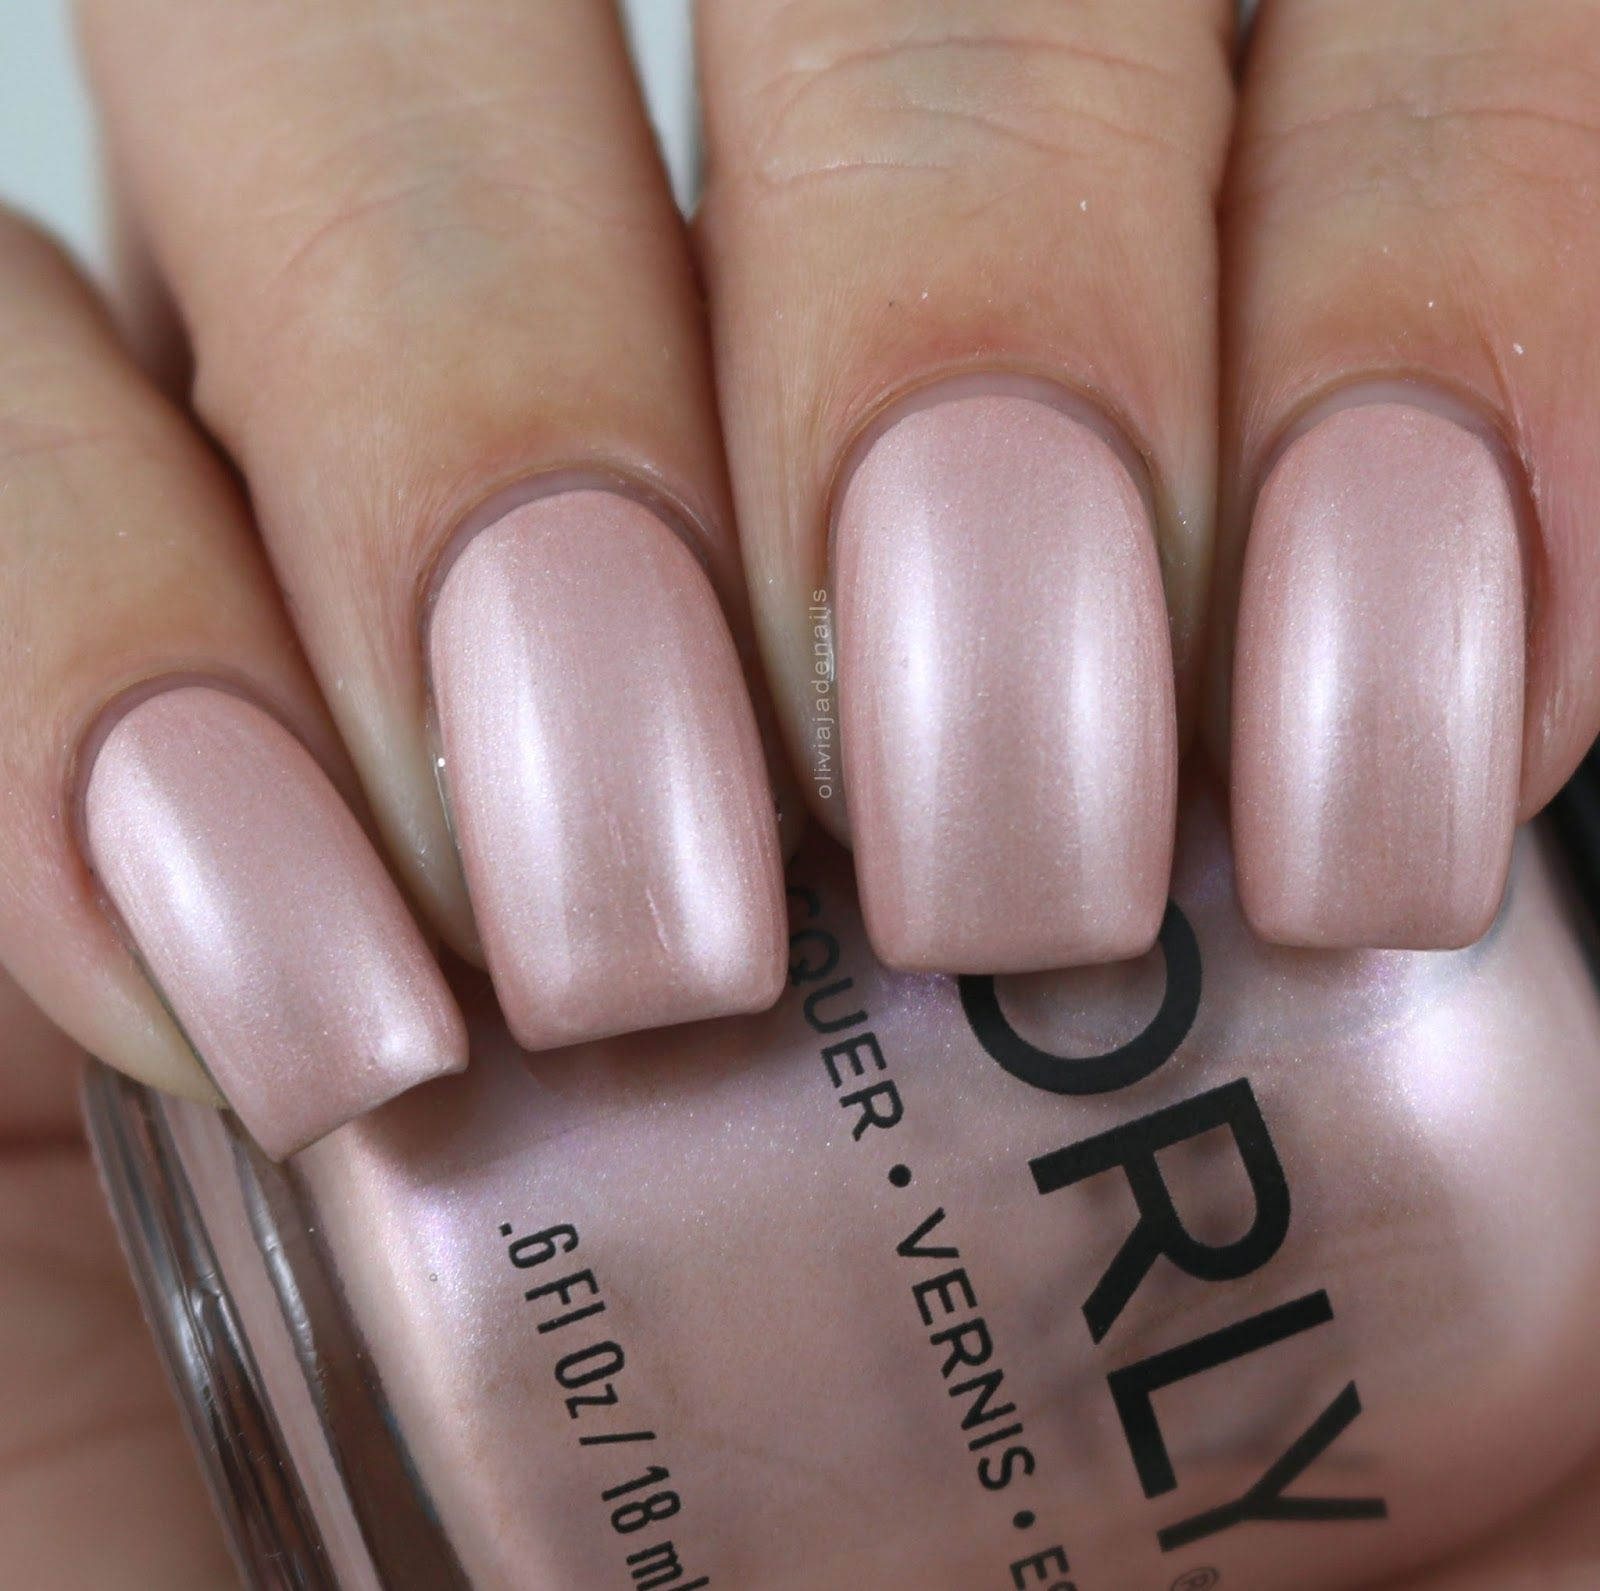 Orly Velvet Dream Collection Swatches Review Nail Polish